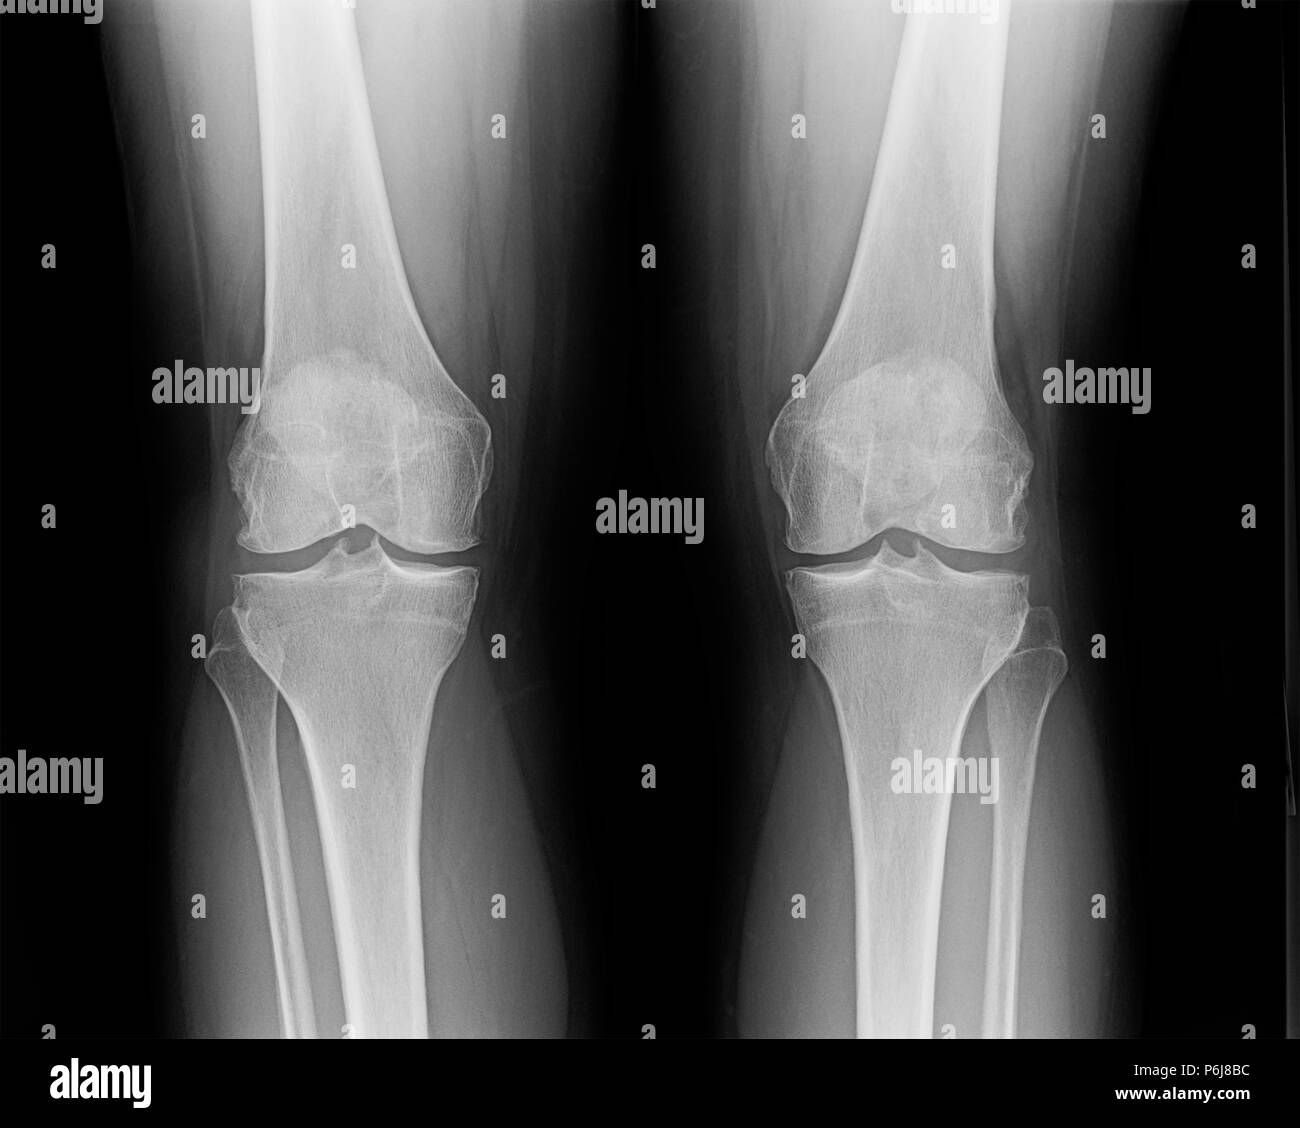 X-ray of knees of mature female suffering from minor osteoarthritis and bone spurs. Stock Photo